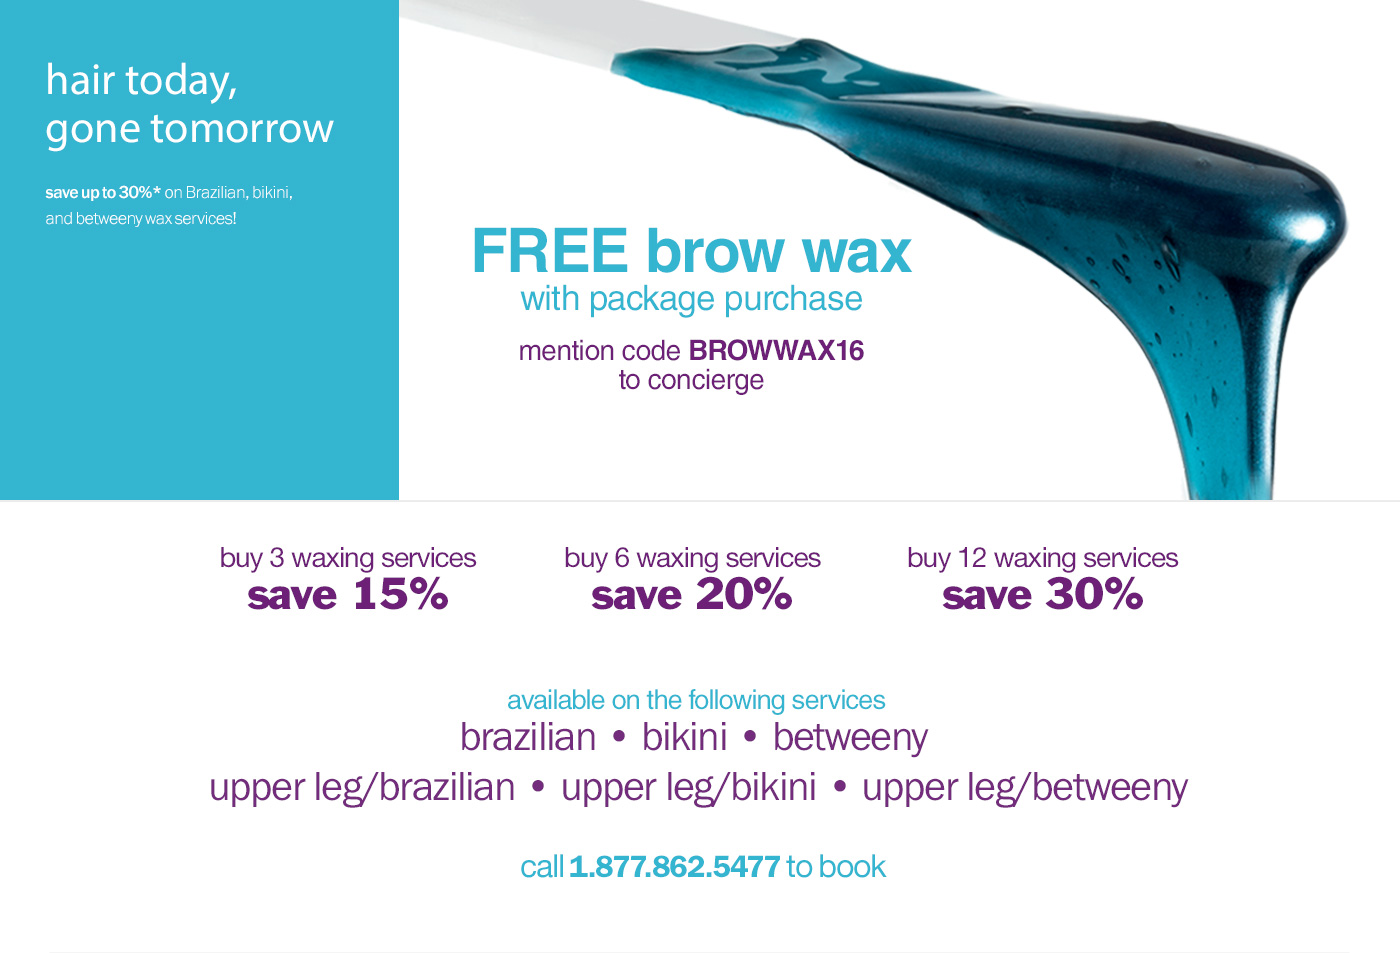 save up to 30% on waxing PLUS free brow wax!